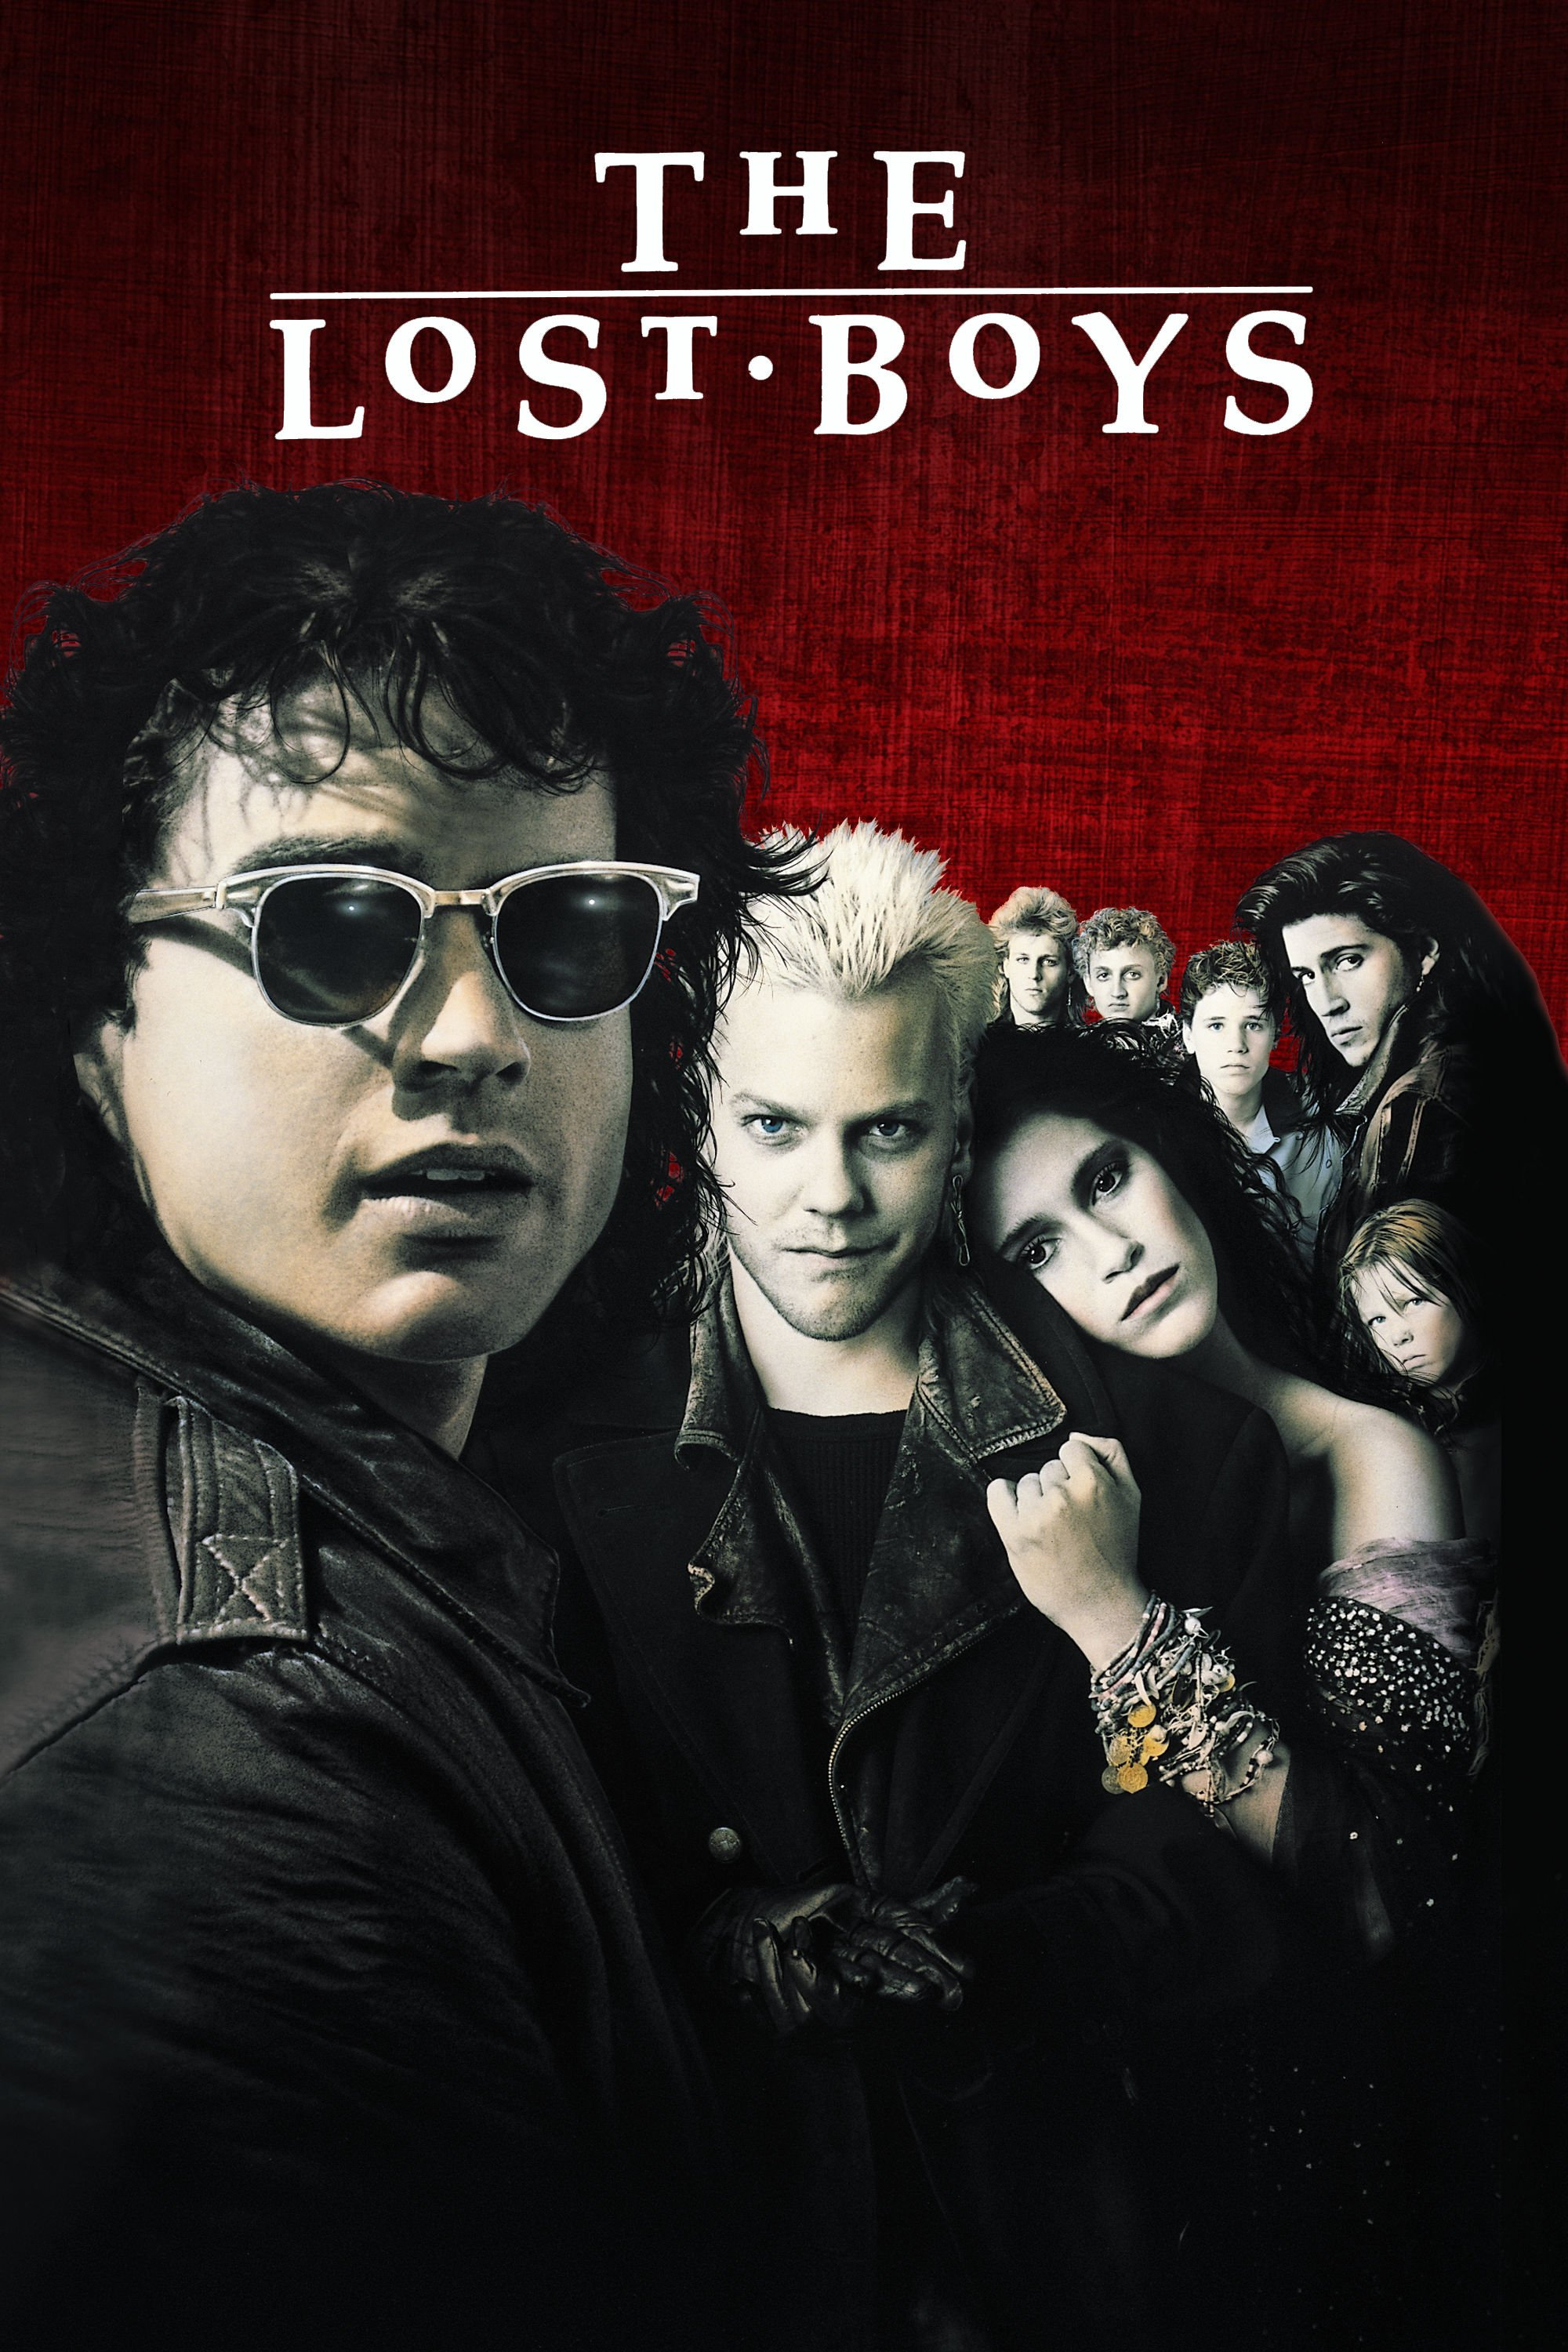 the-lost-boys-filming-locations-itunes-poster